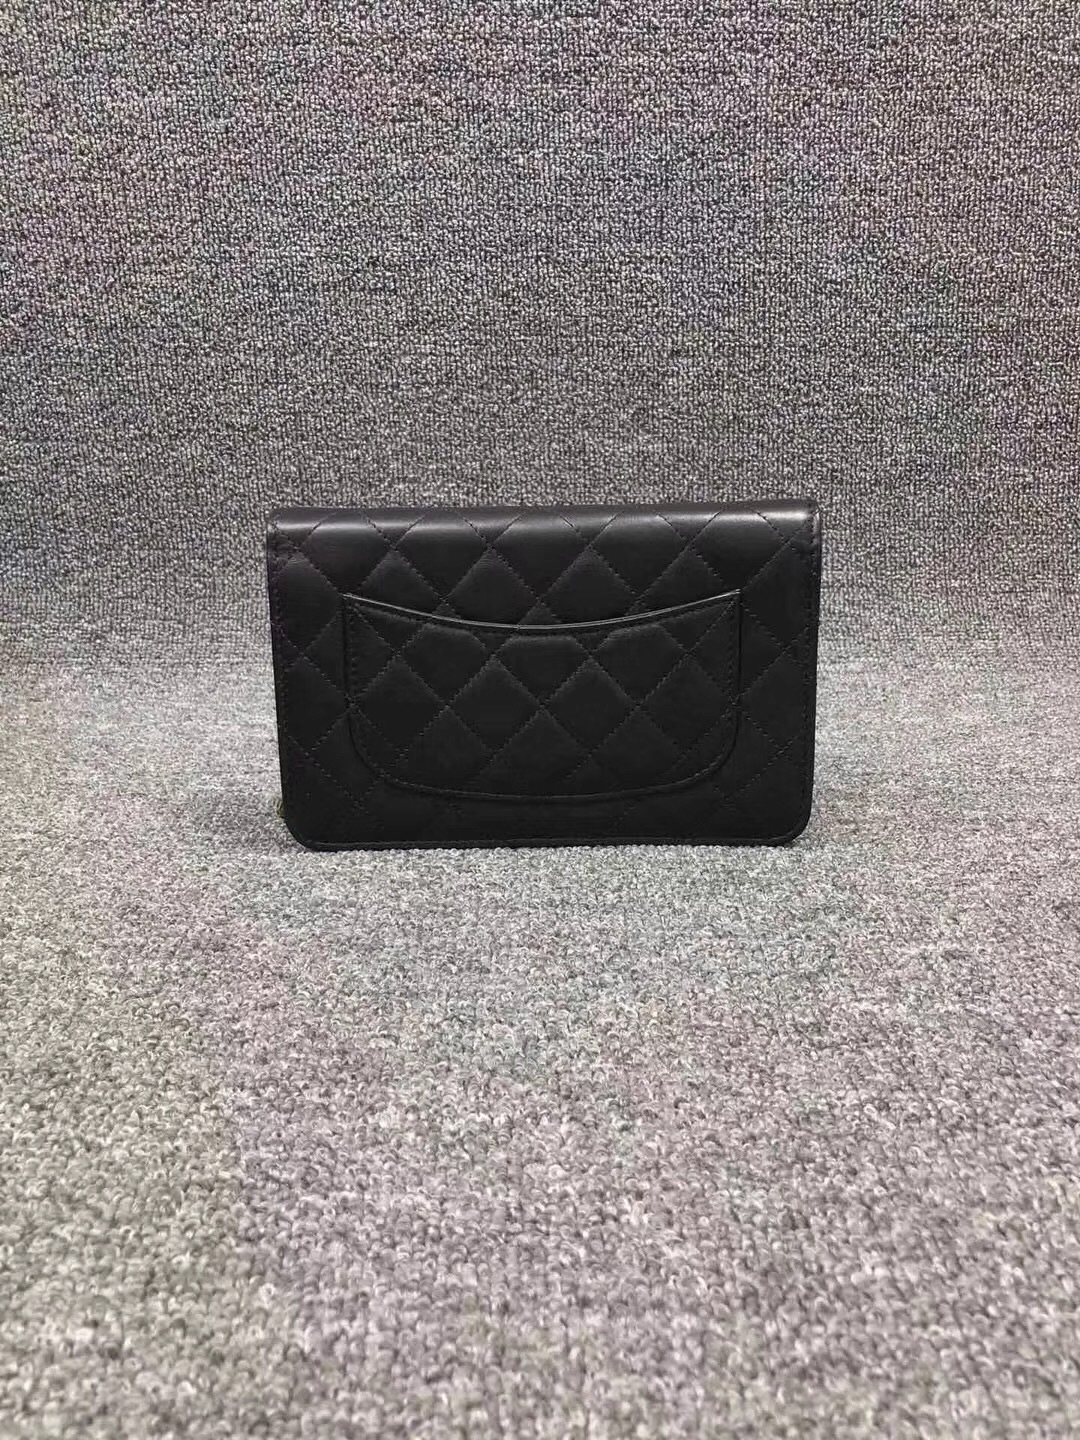 bd705fb10b6c NEW AUTH CHANEL 2019 Black Lambskin WOC Wallet on Chain WOC Bag GHW ...